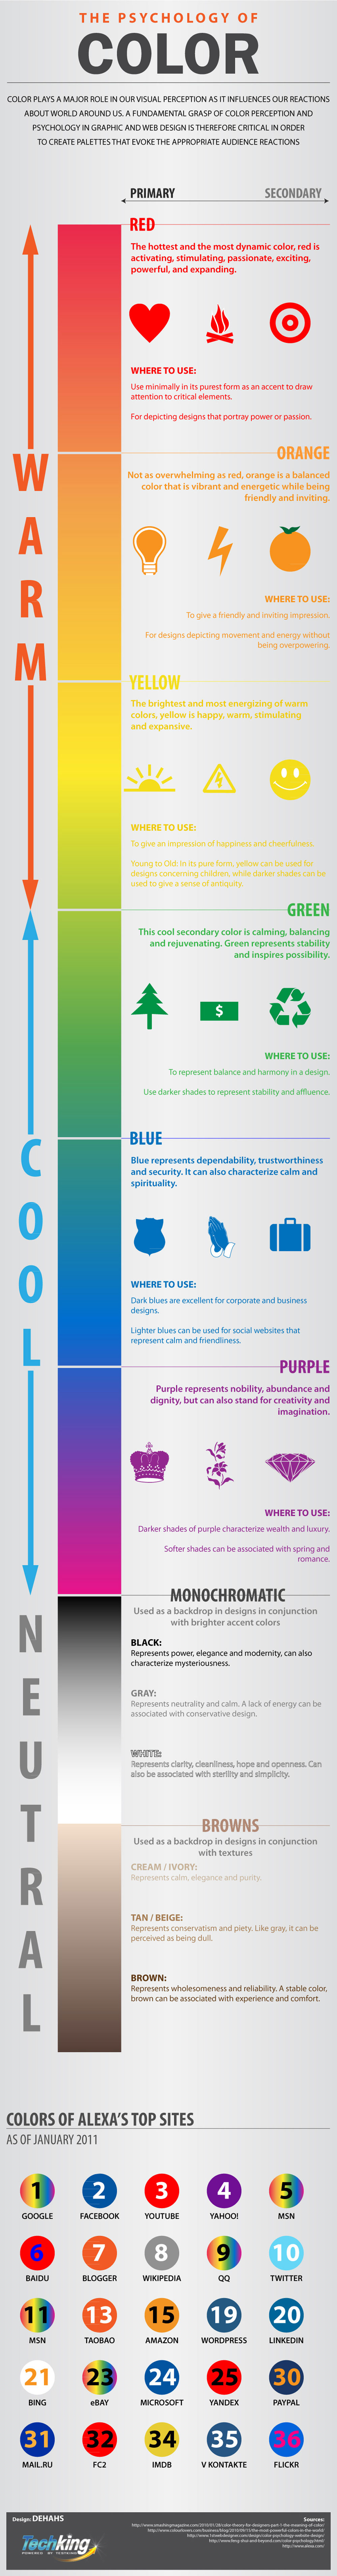 The Psychology of Color – Must See for Web Designers - Infographic